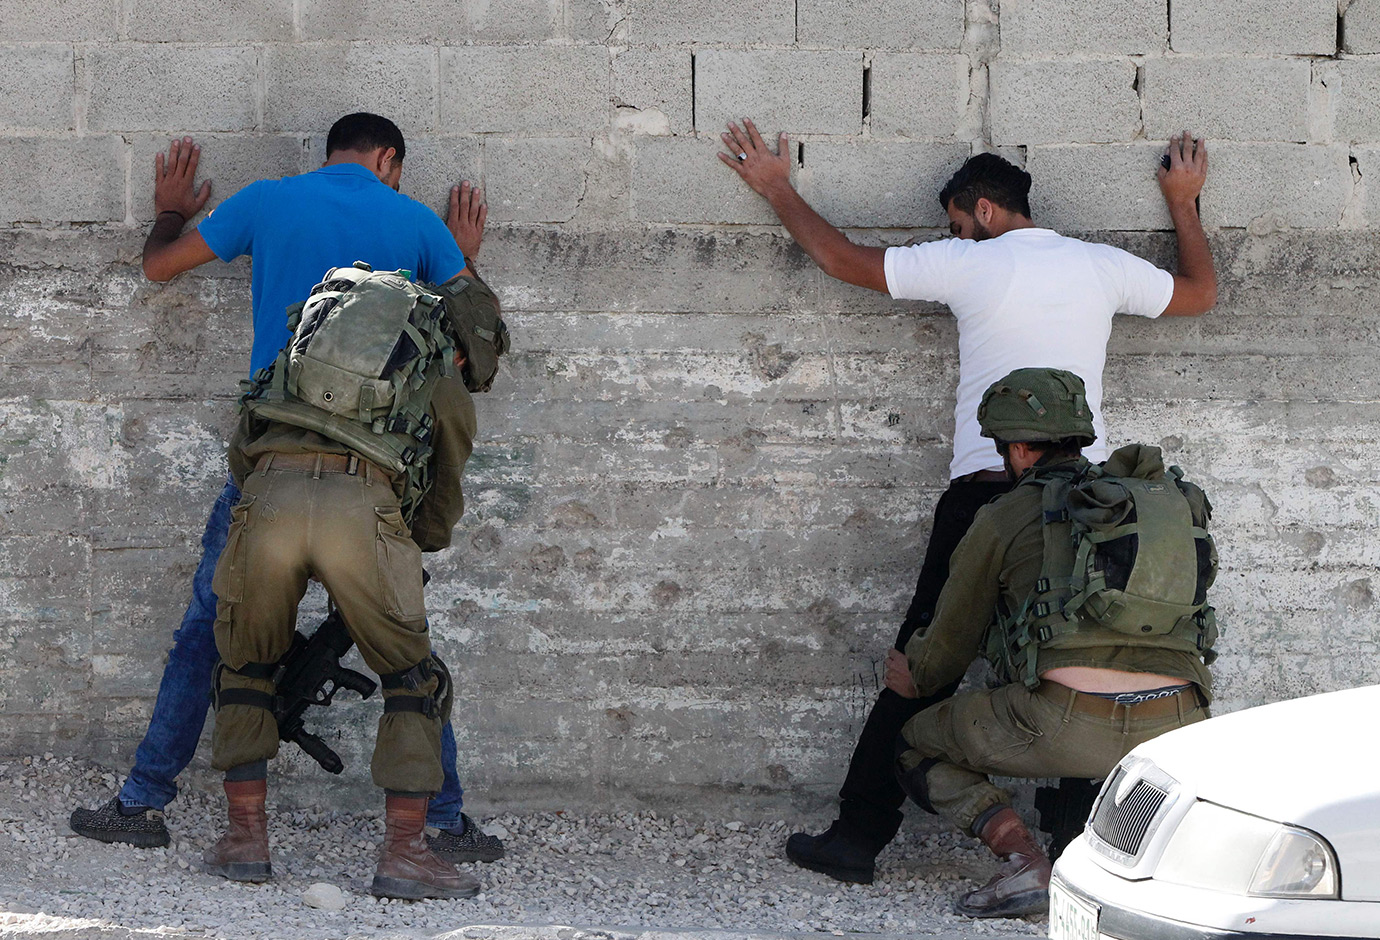 Israeli security forces body search Palestinians